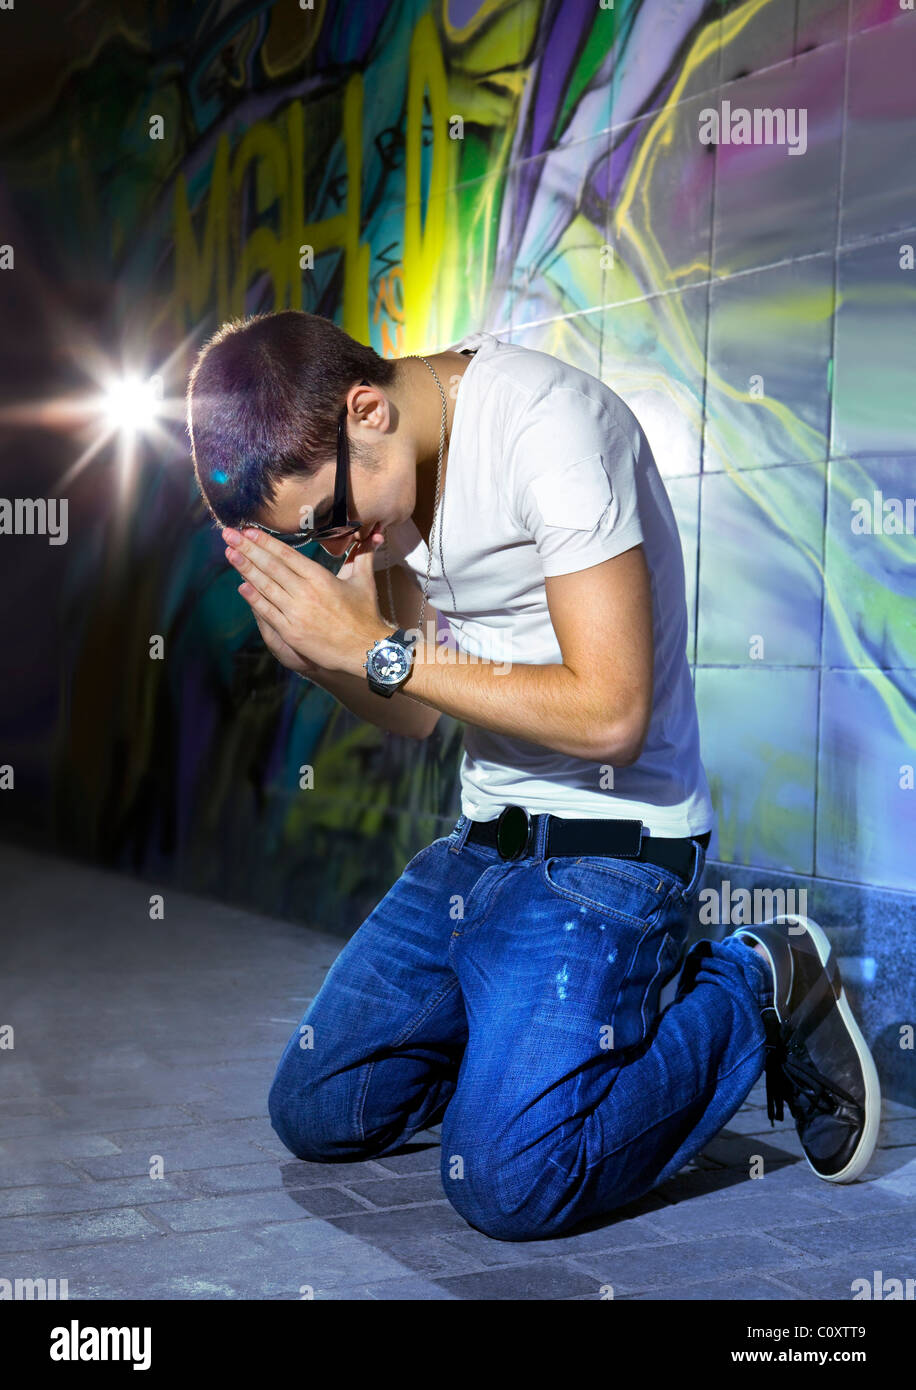 young man offers prayers in front of colorful graffiti wall - Stock Image